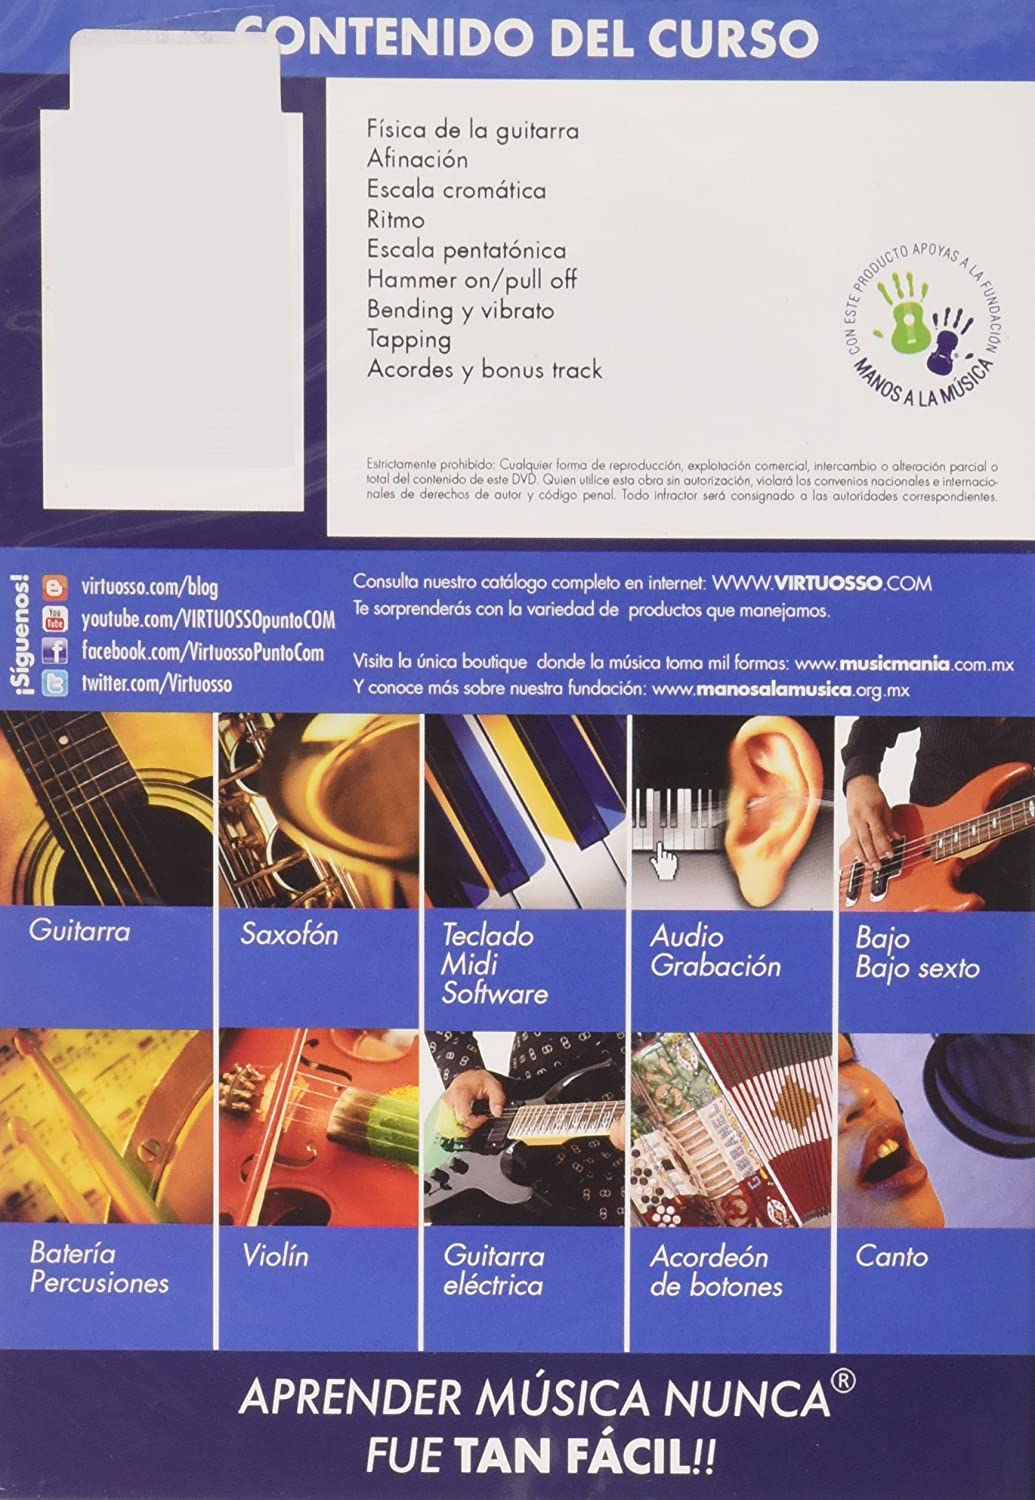 Amazon.com: Virtuosso Electric Guitar Method Vol.1 (Curso De Guitarra Eléctrica Vol.1) SPANISH ONLY: Musical Instruments